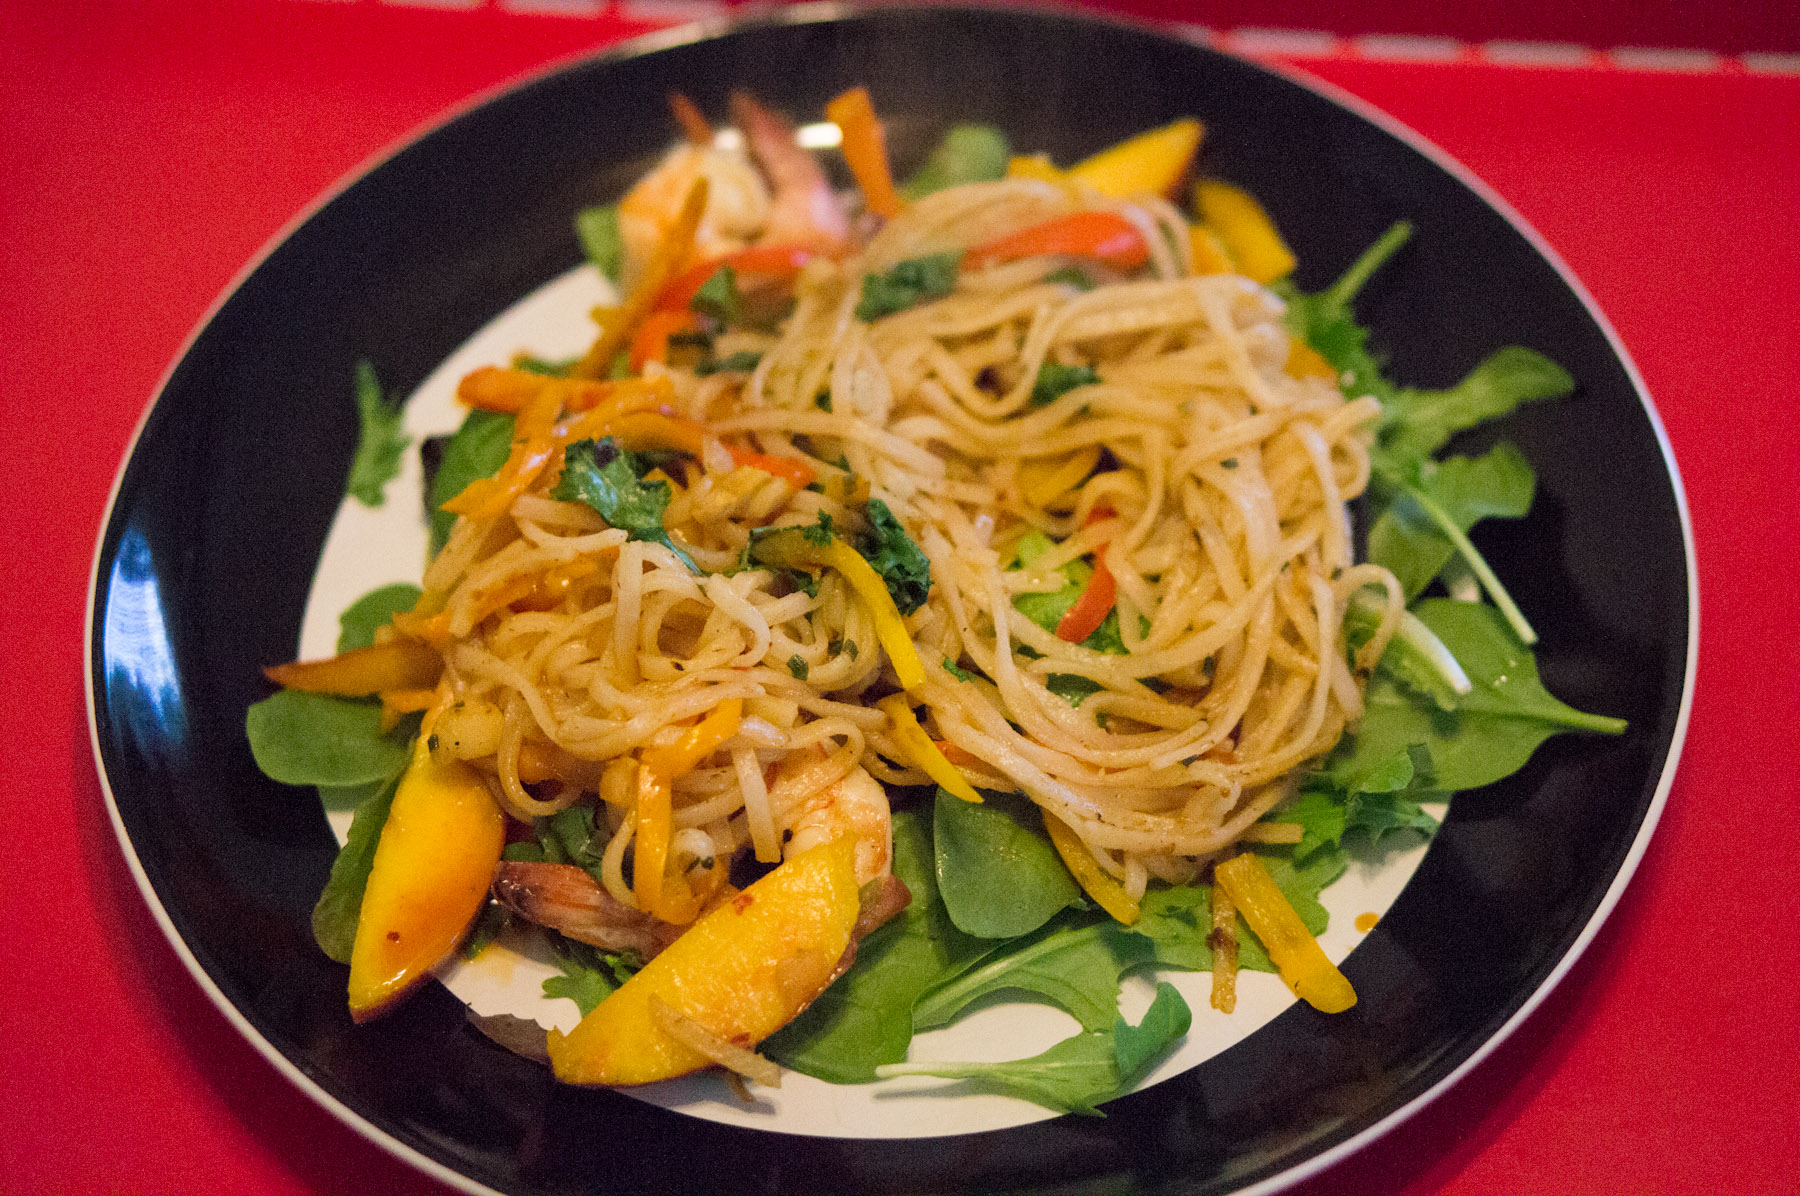 In a plate place some greens, then pour the noodles over them. How ...